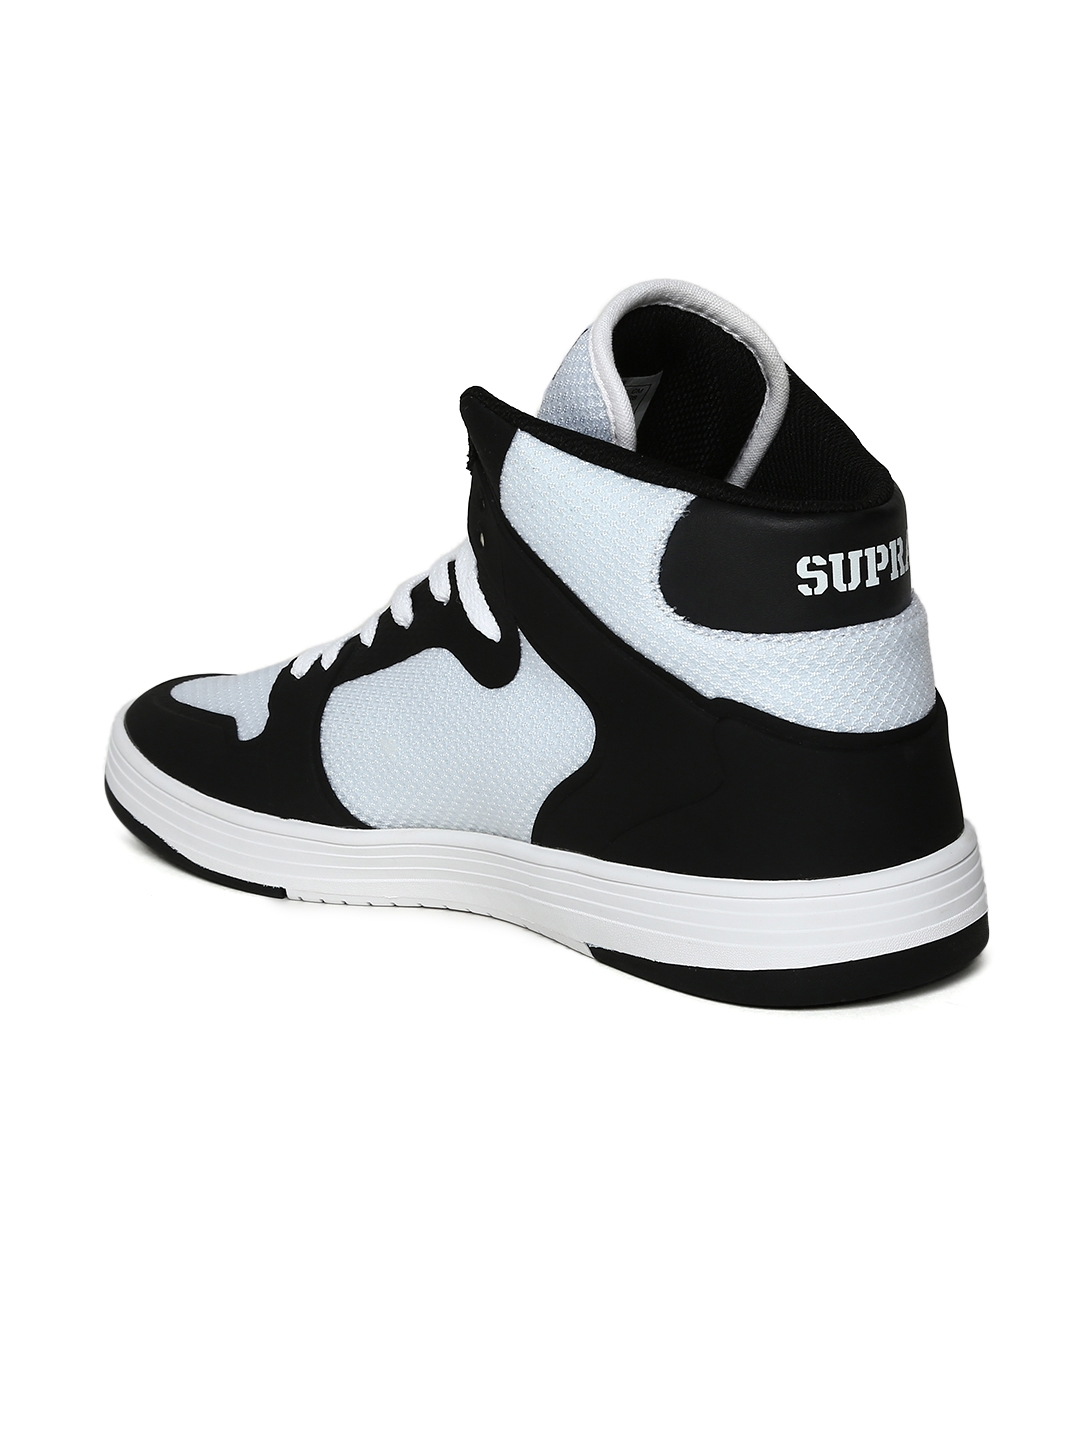 29ee3d4af577 Buy Supra Men Black   White Colourblocked Leather Mid Top Sneakers ...